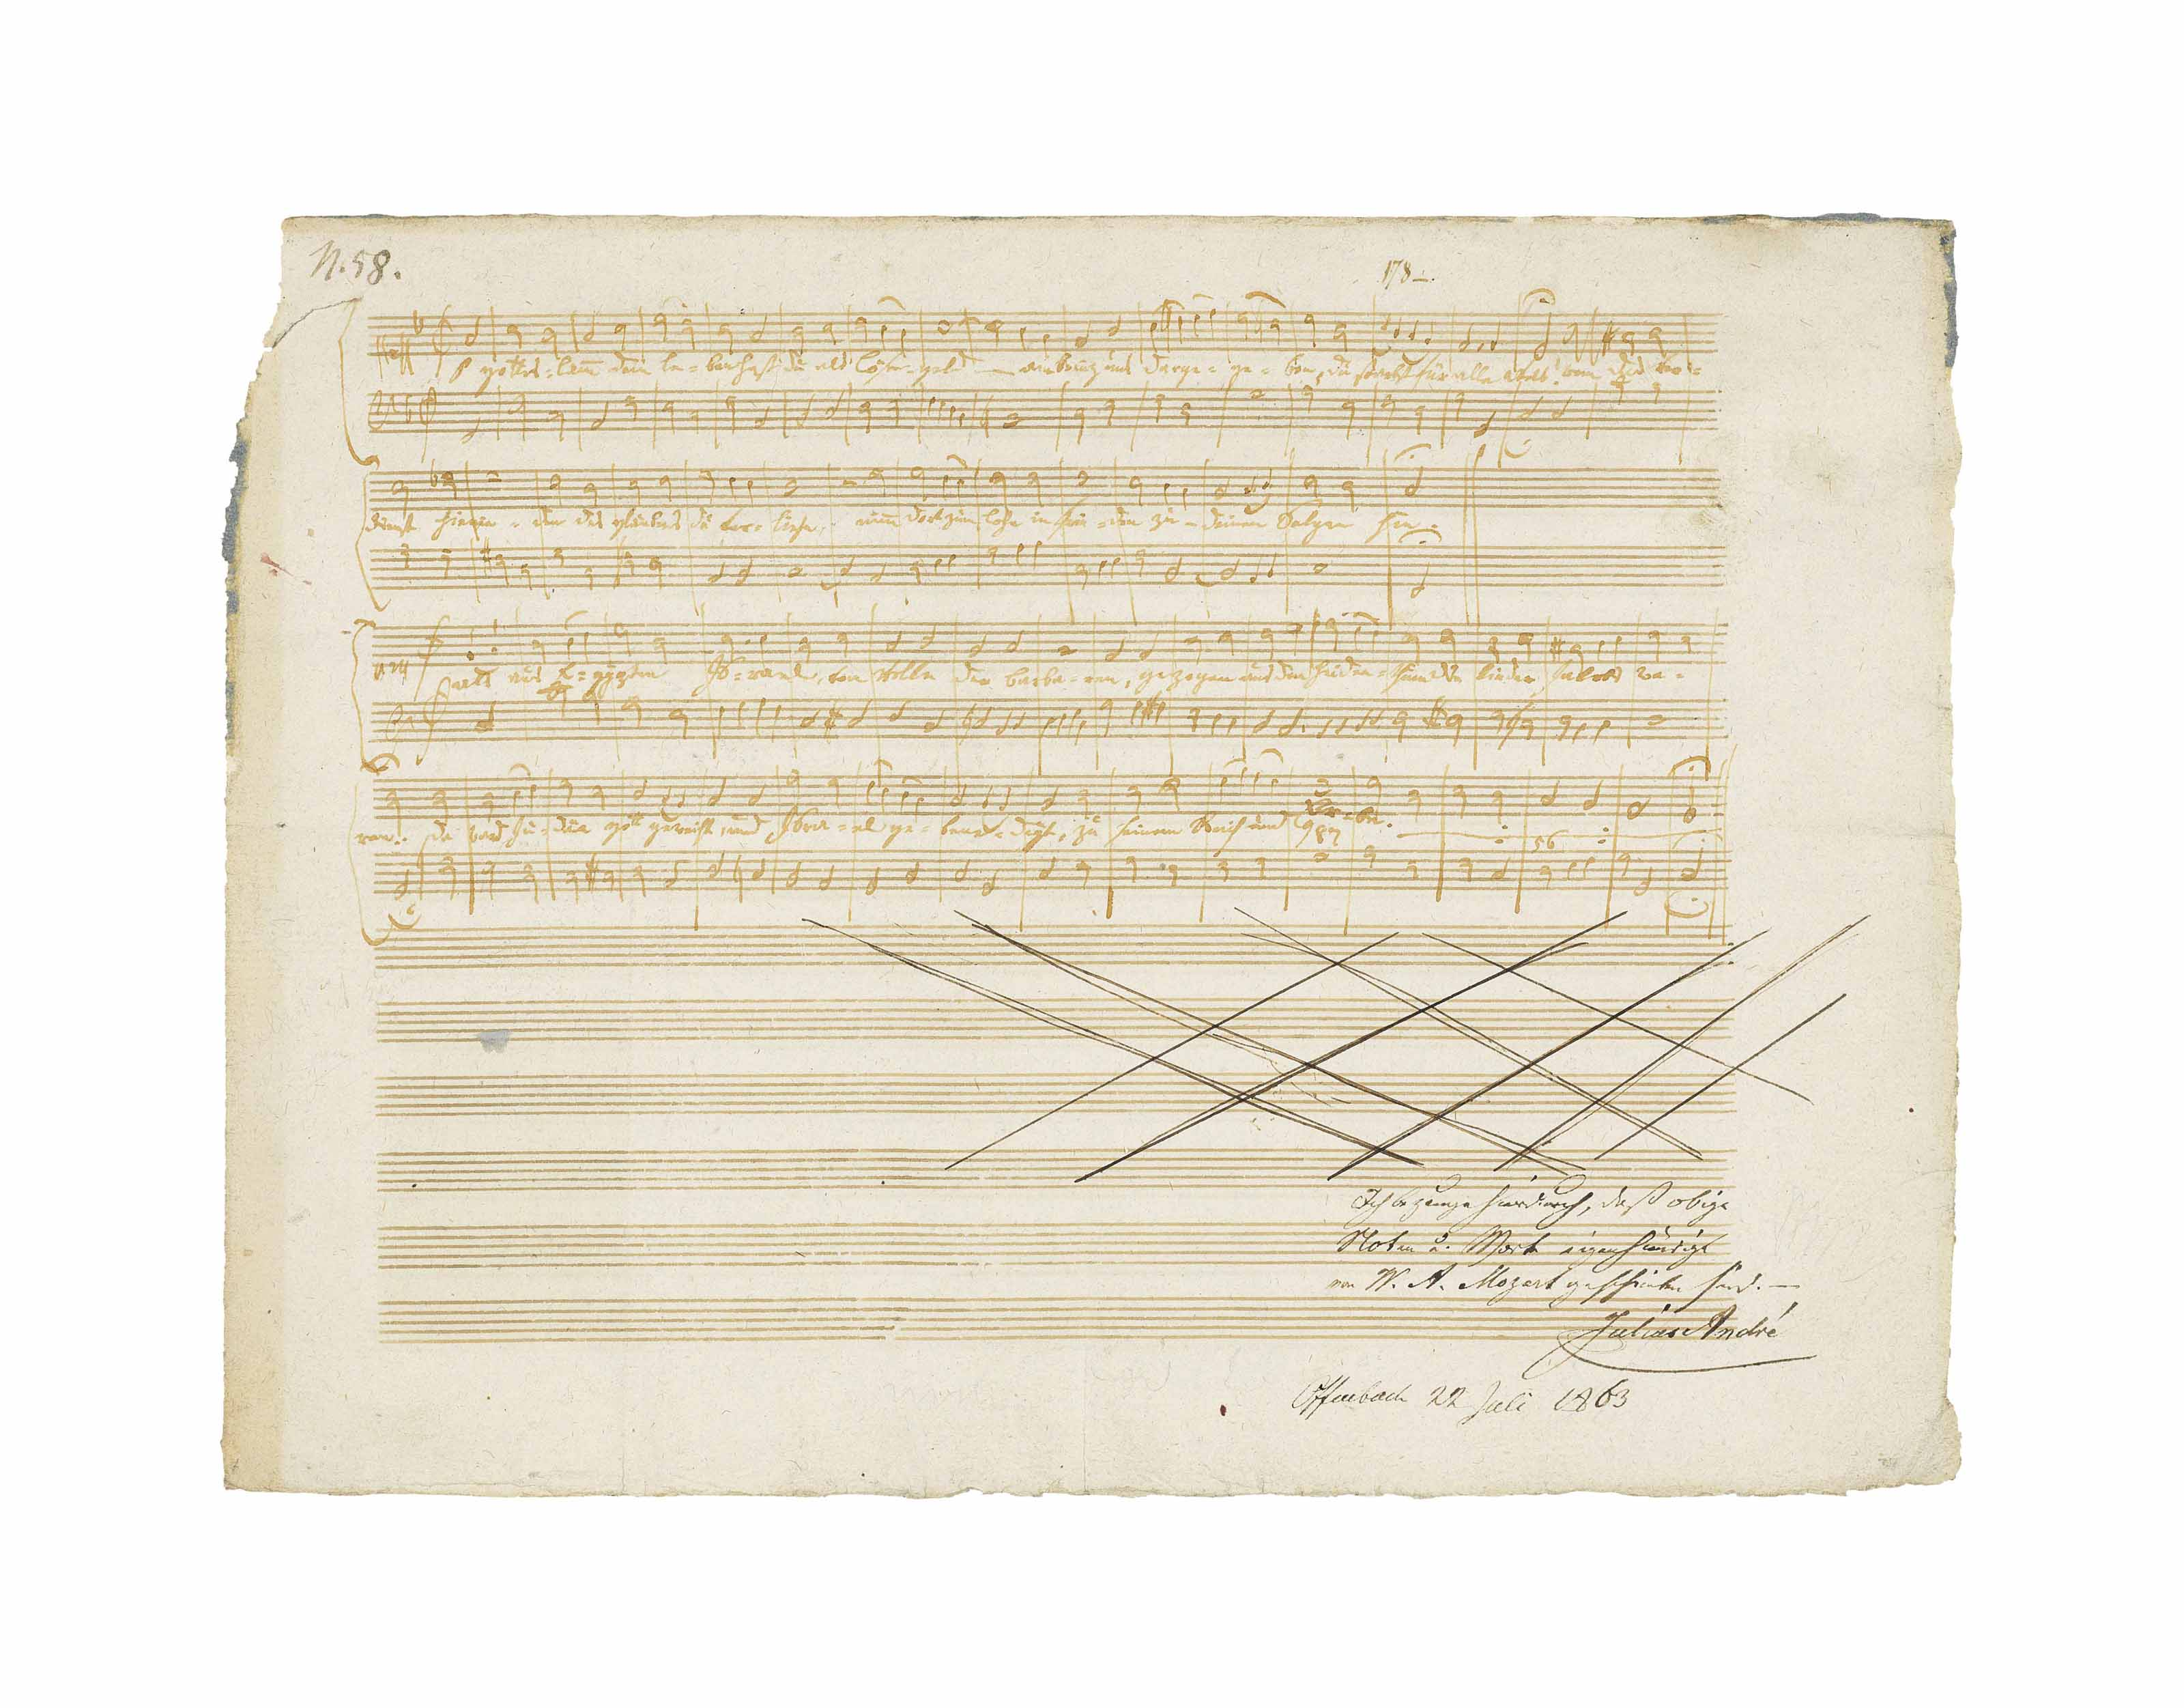 MOZART, Wolfgang Amadeus (1756-1791). Autograph music manuscript, Zwei deutsche Kirchenlieder, K.343 (336c), n.p., n.d. [Prague, January/February 1787].